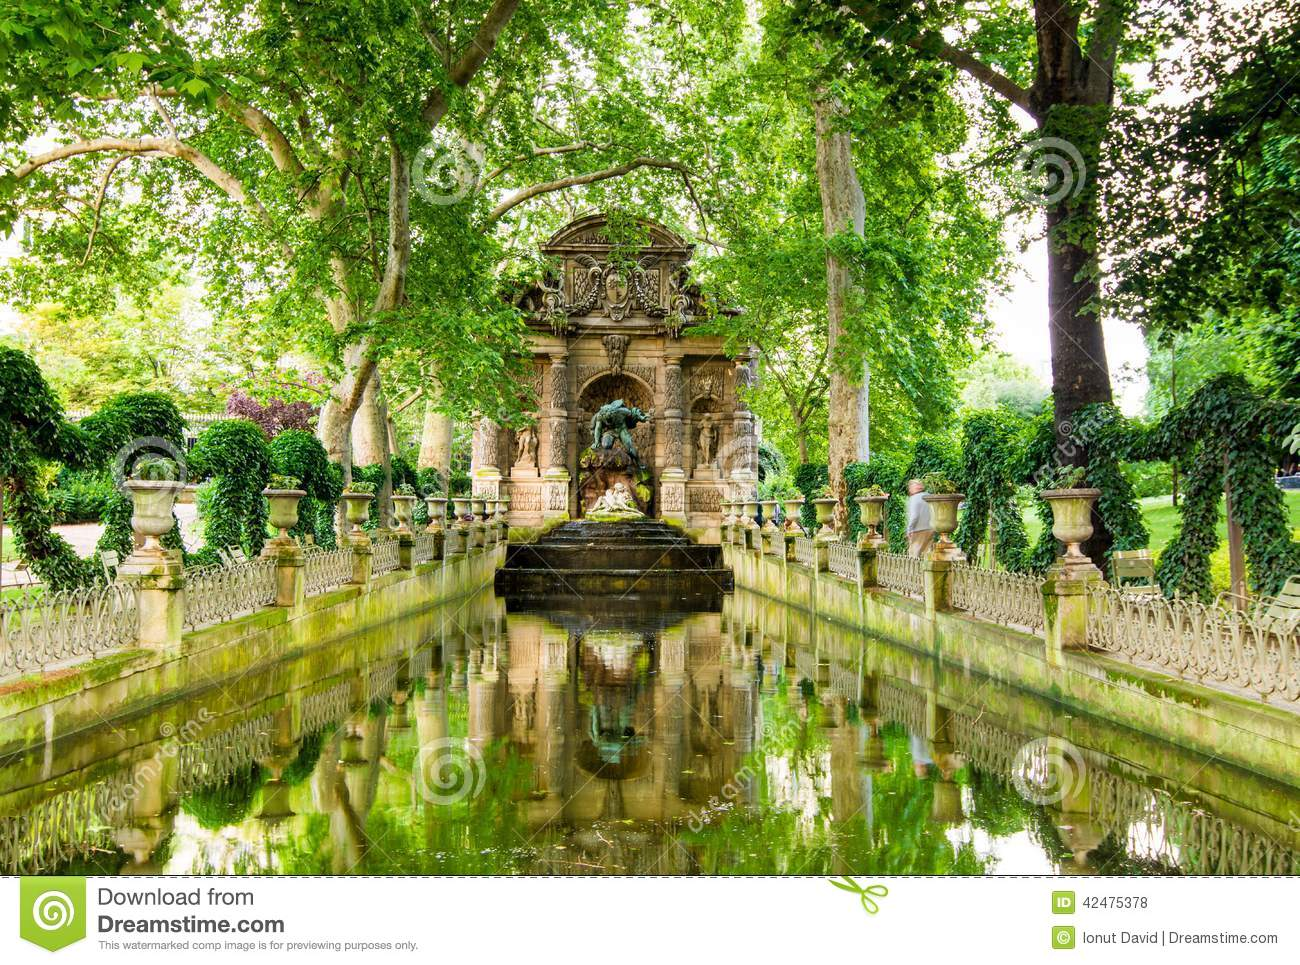 The medici fountain paris france stock photo image of for Buvette des marionnettes du jardin du luxembourg